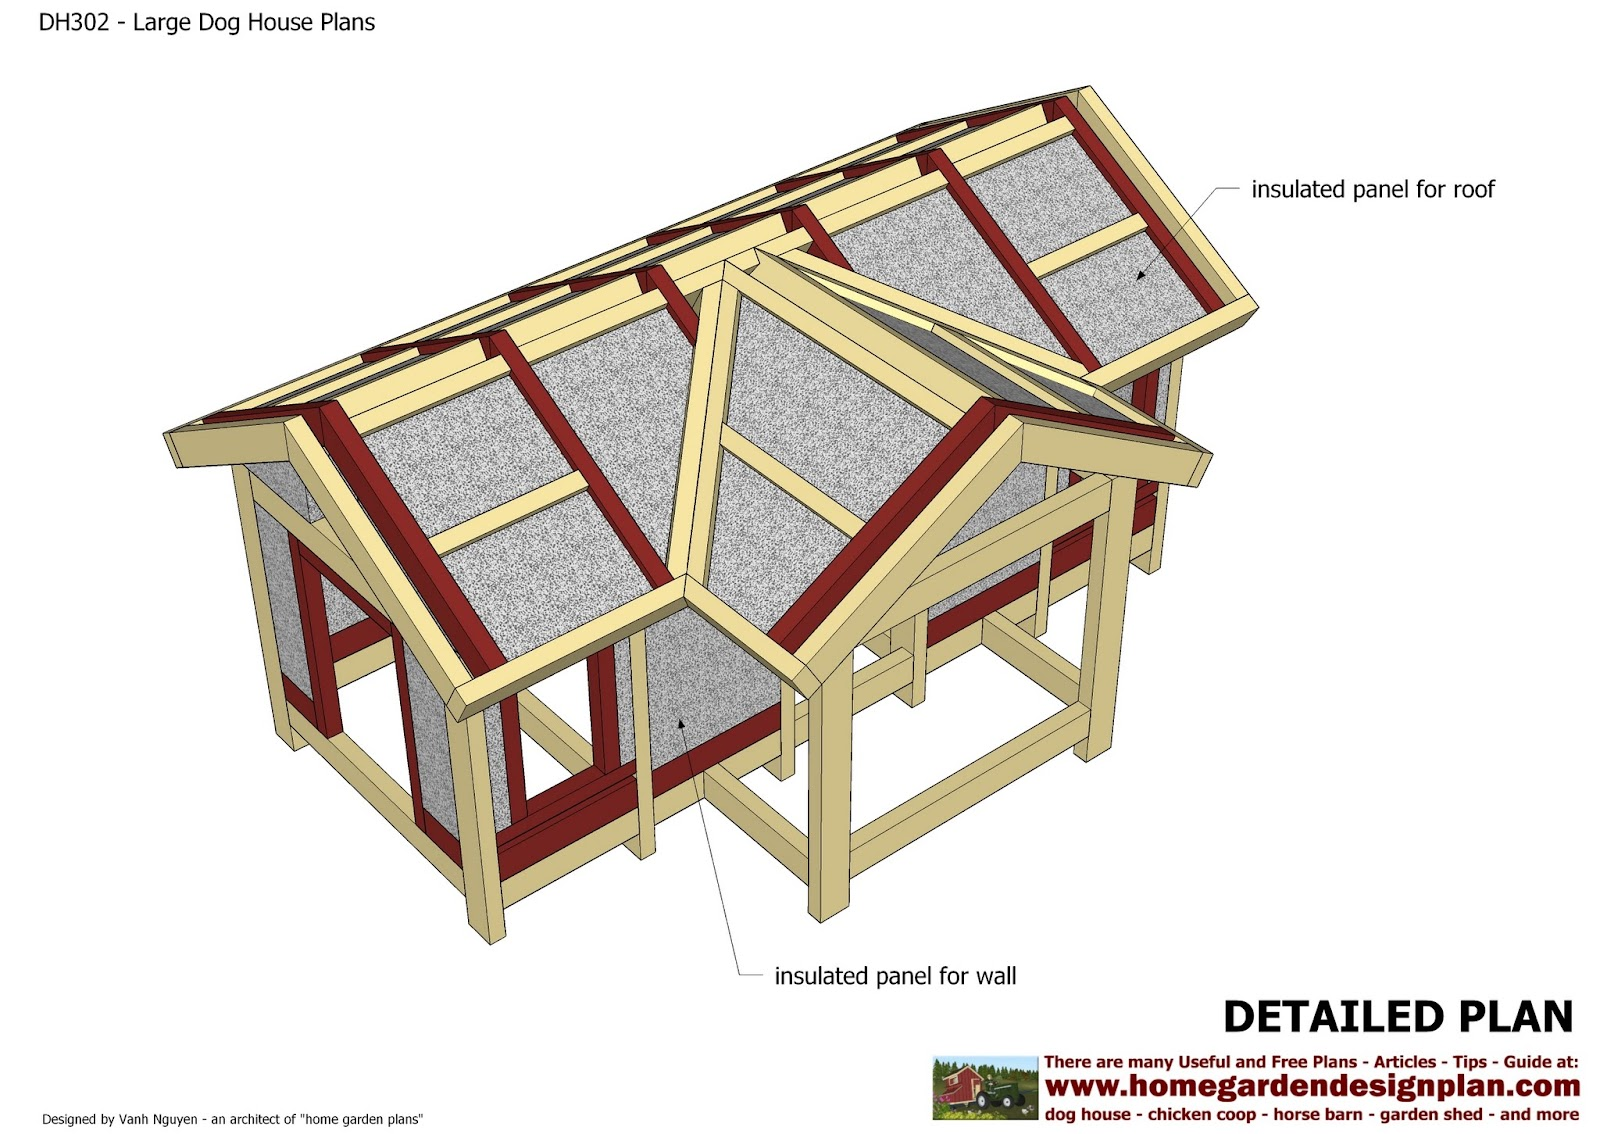 Insulated dog house plans for large dogs free - photo#20